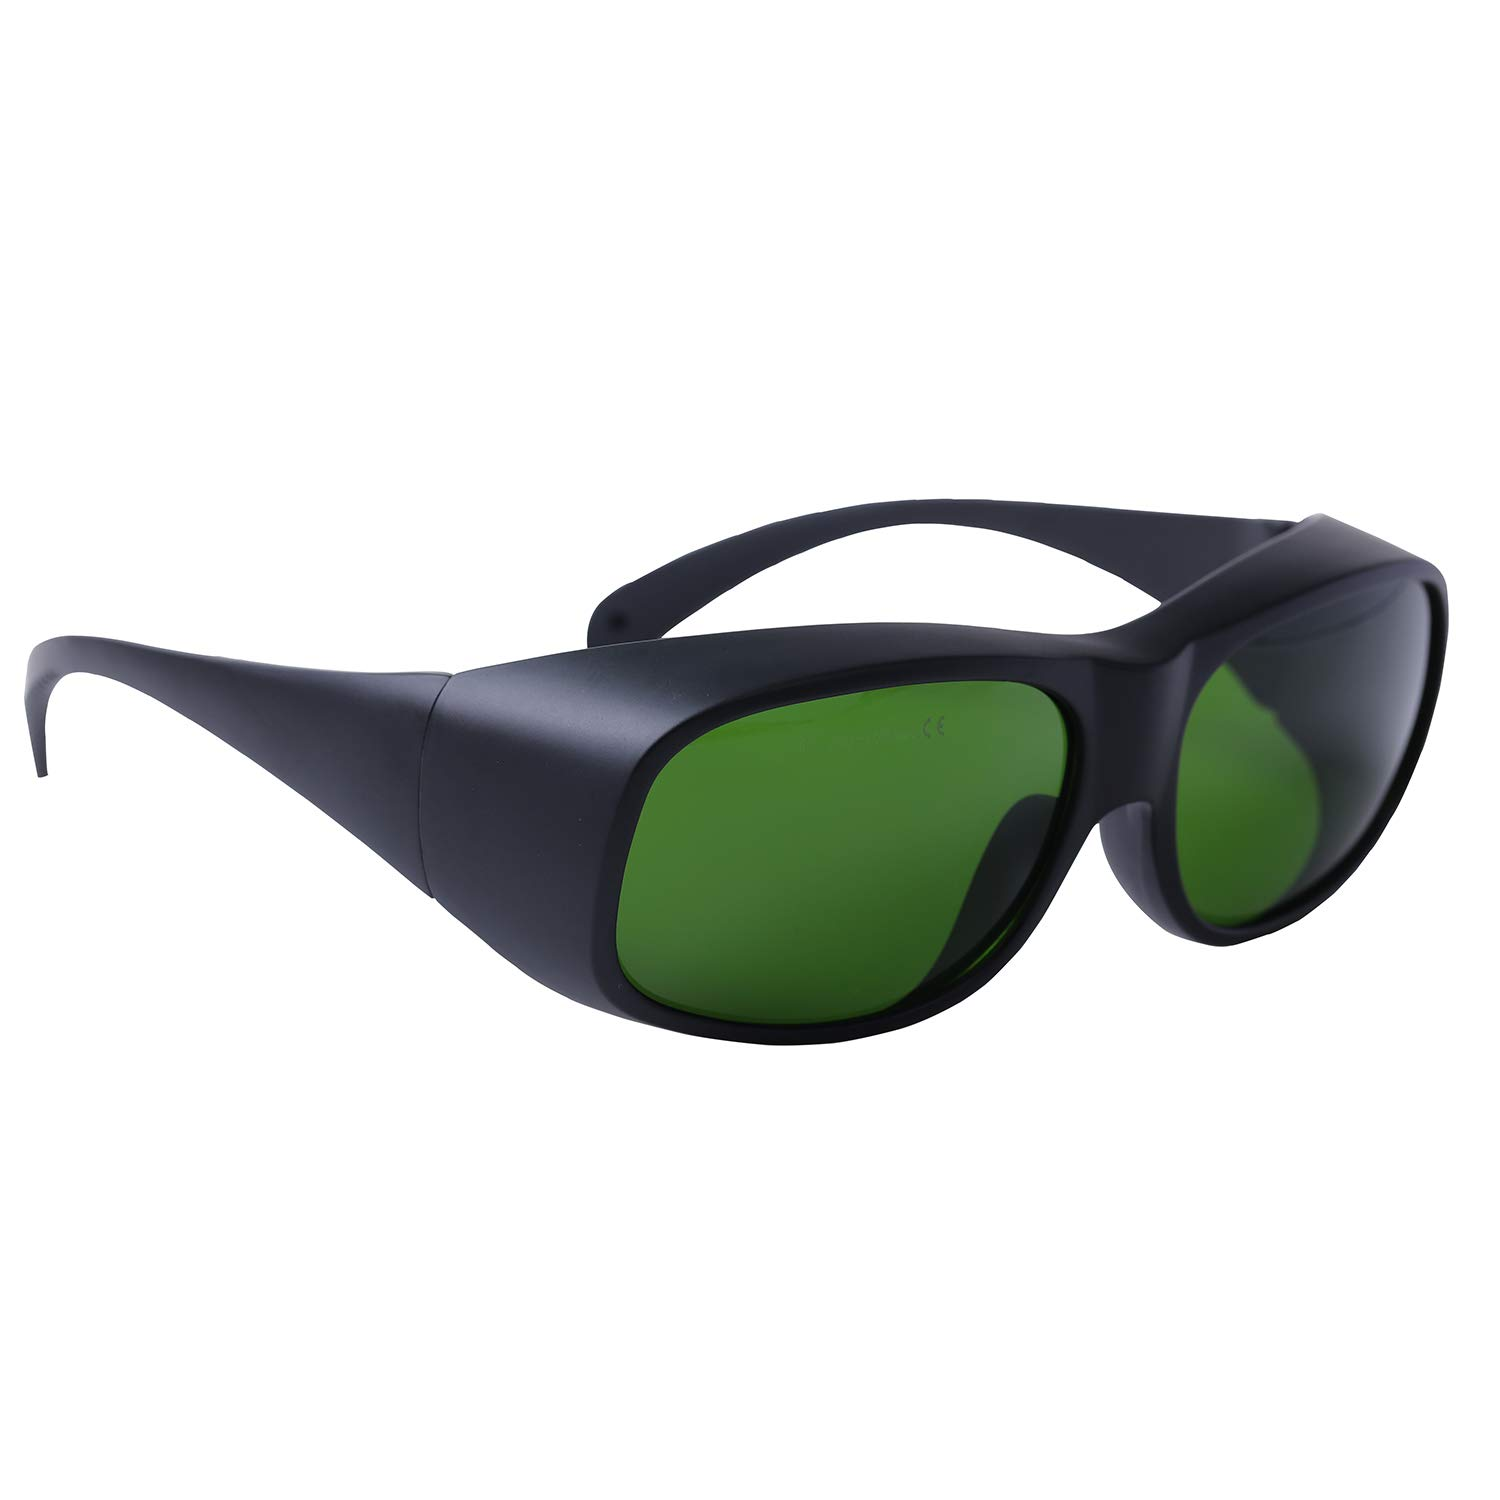 LP-LaserPair IPL Safety Glasses 200-1400nm Protection Glasses Safety Glasses, UV Protection Glasses,Laser Hair Removal Protective Glasses